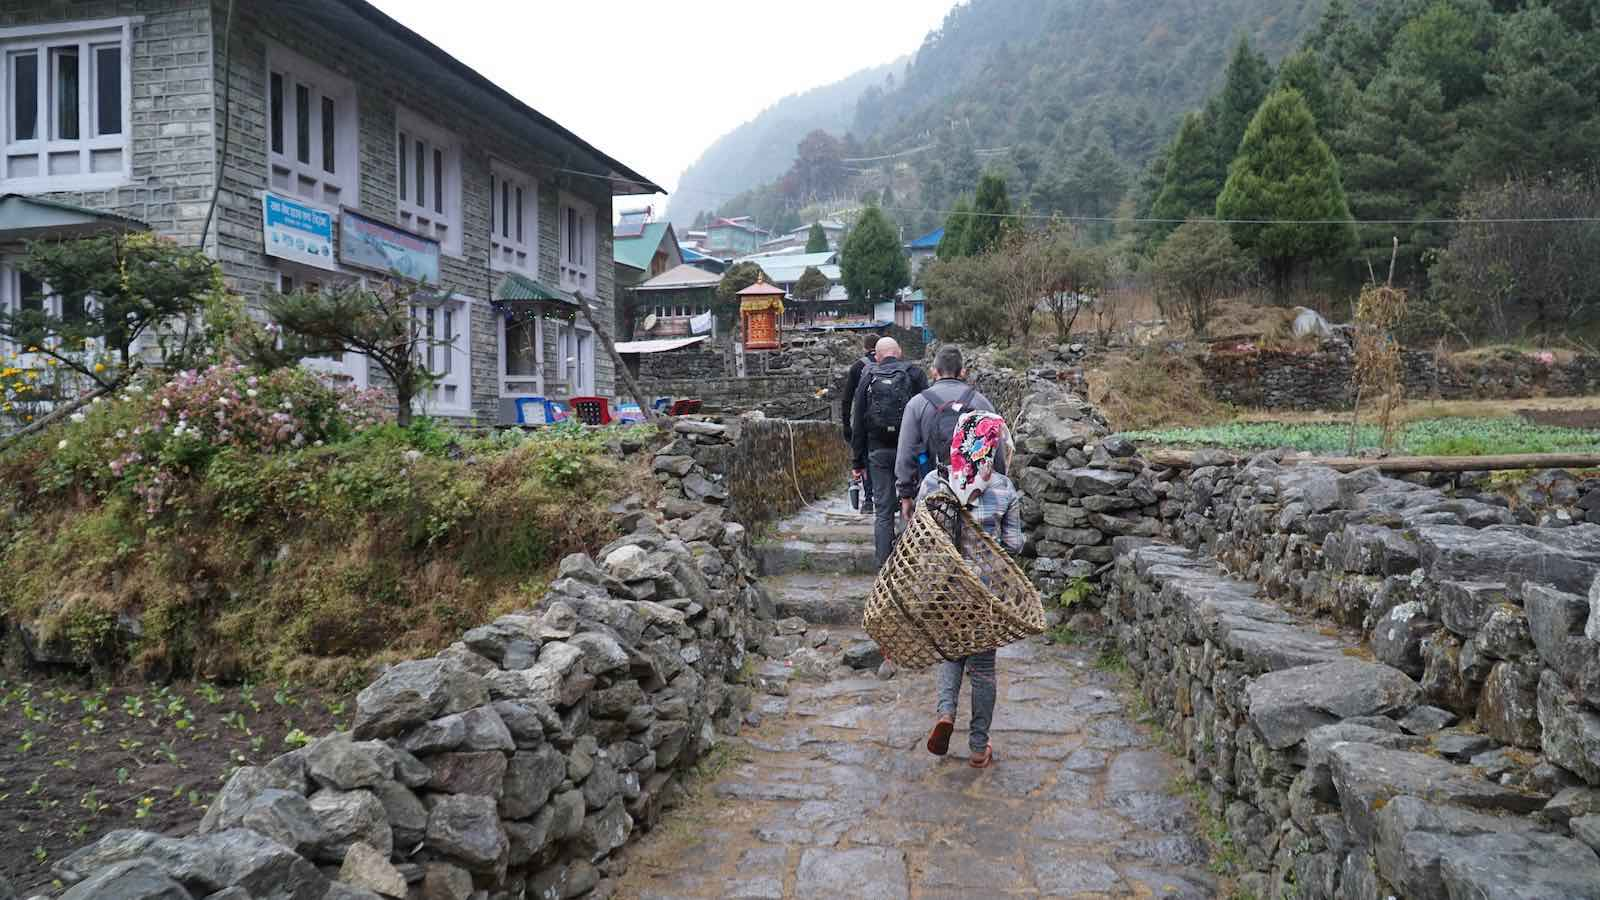 Trekked through a lot of little villages on the sides of the valley